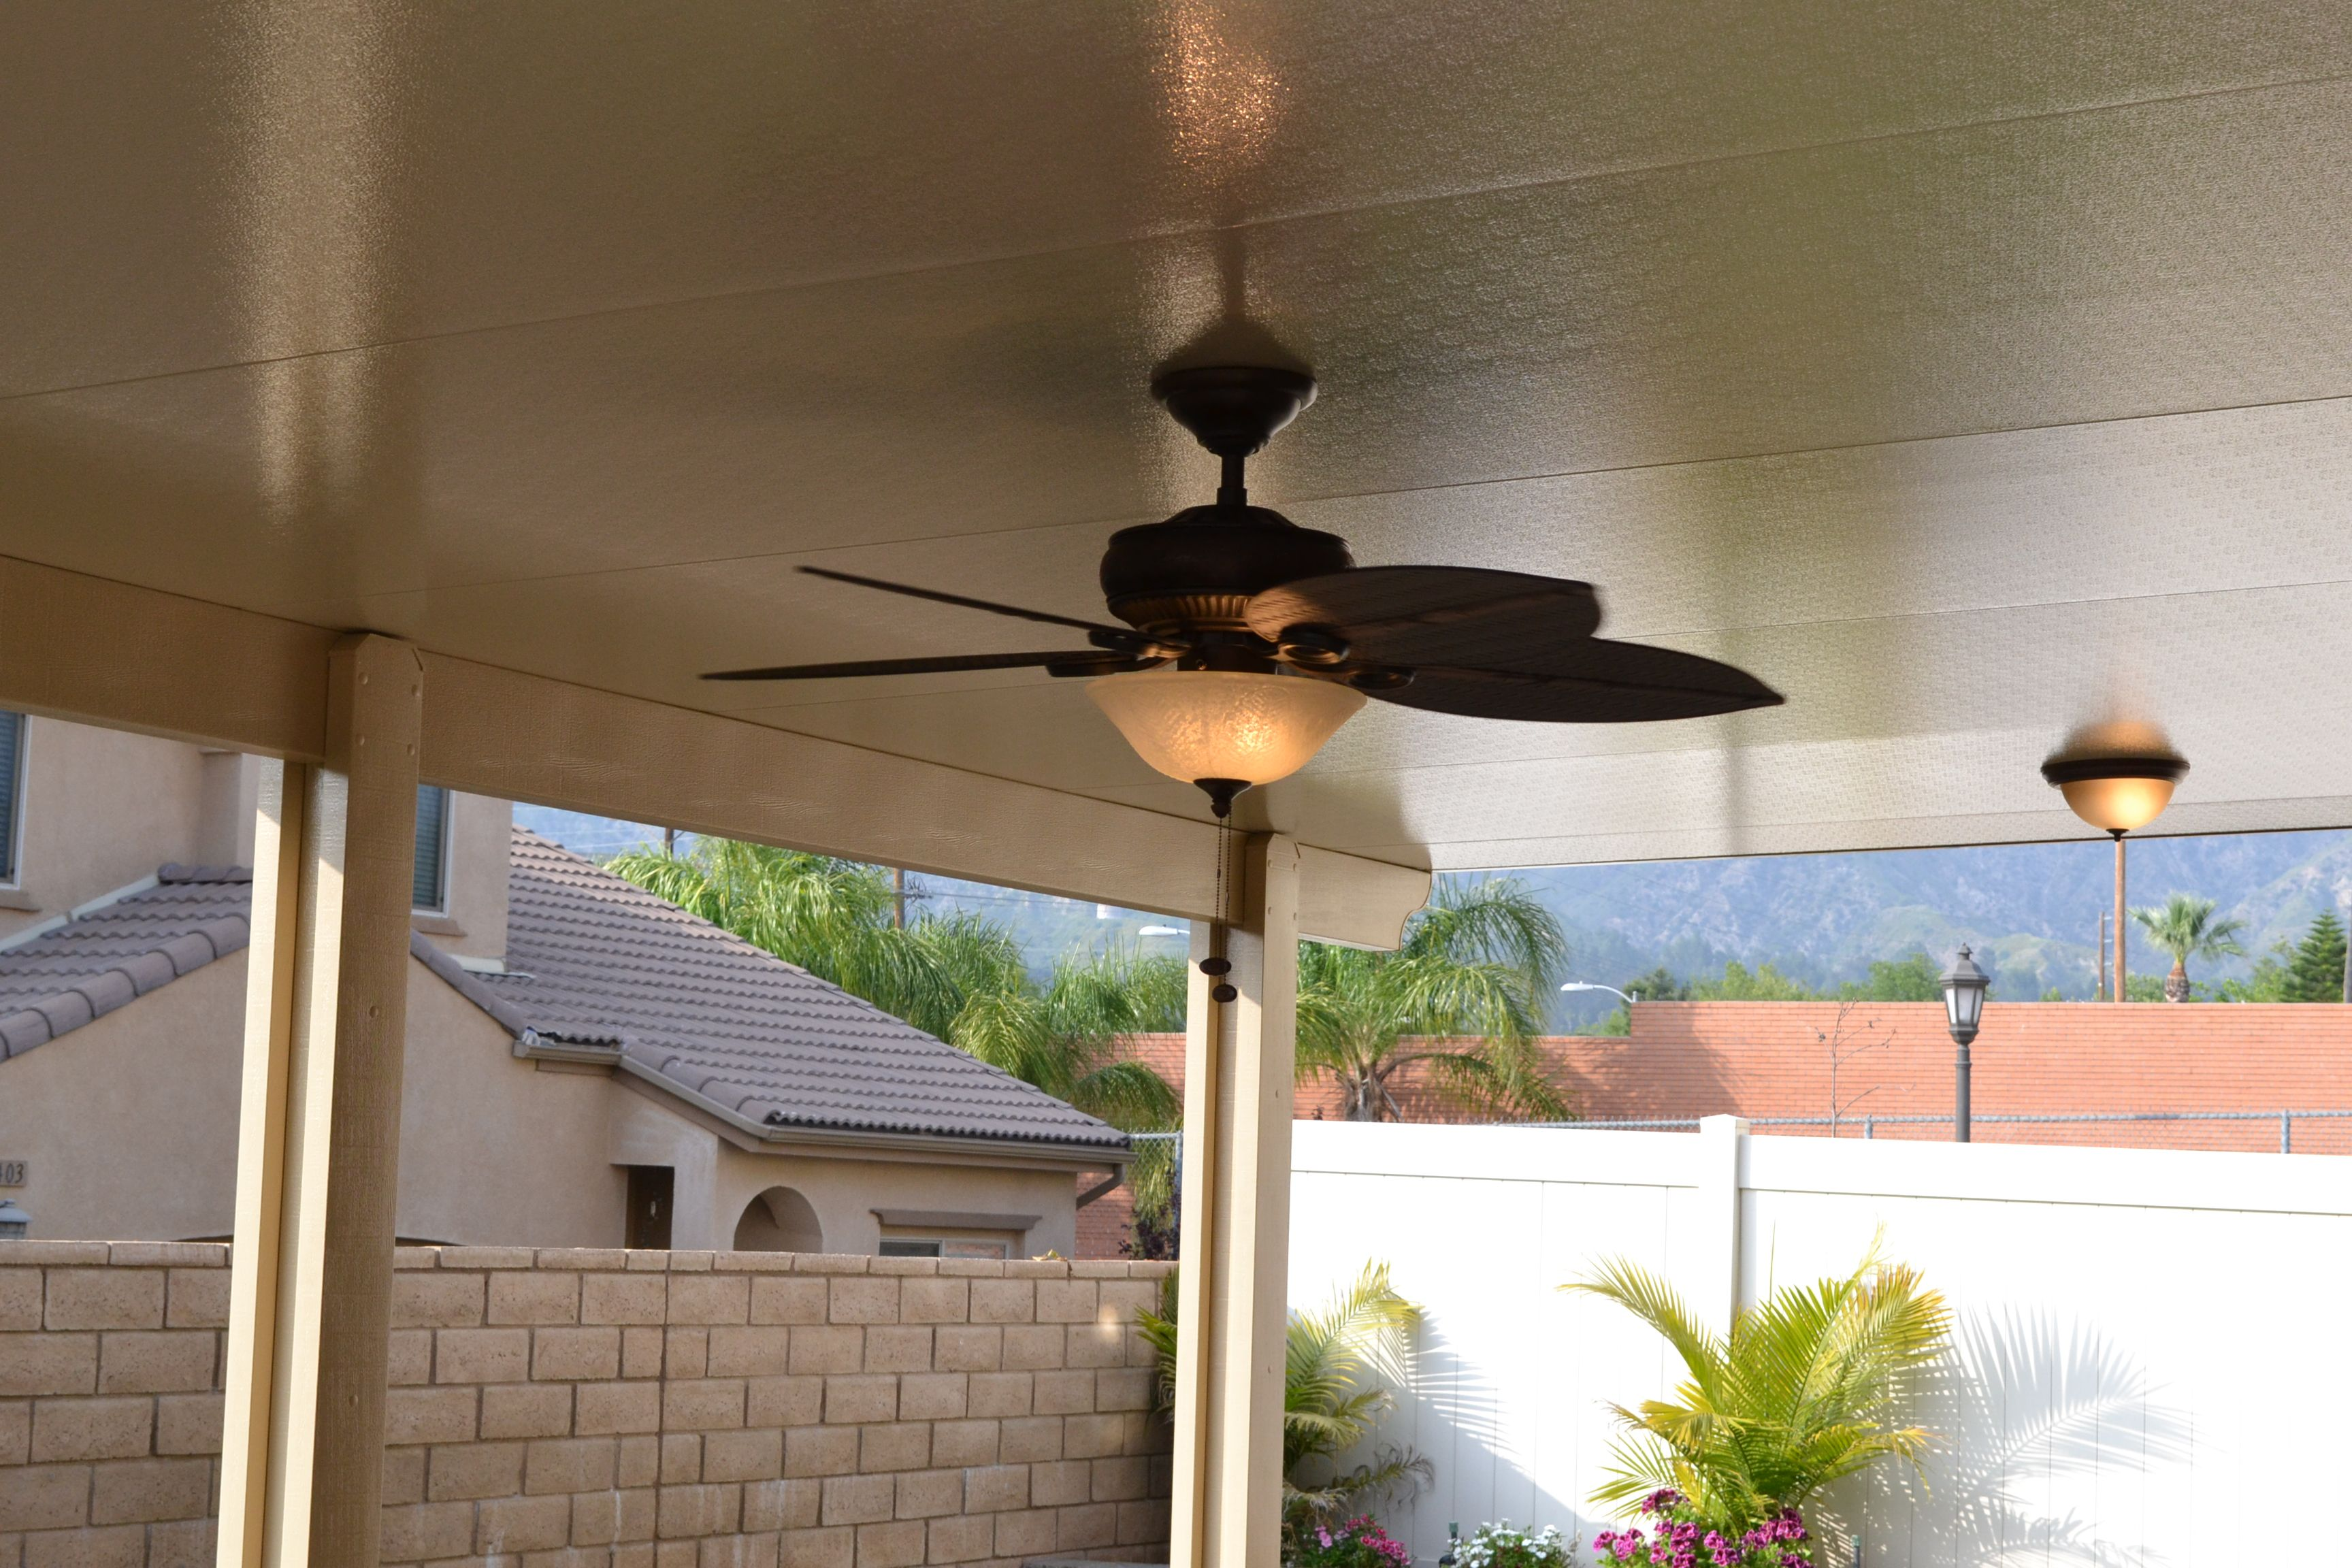 Ceiling Fan And Lighting To Solid Aluminum Patio Cover